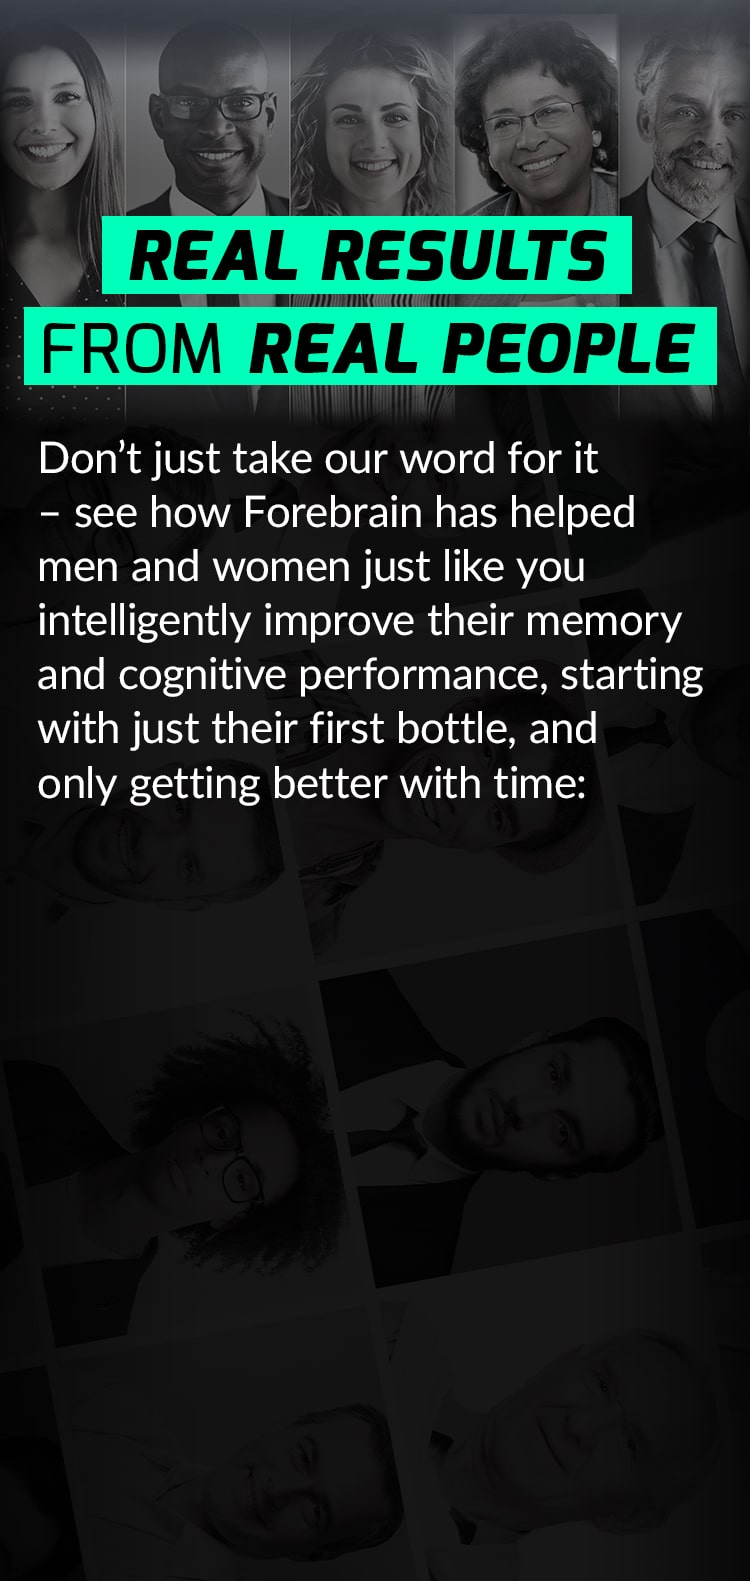 REAL RESULTS FROM REAL PEOPLE. Don't just take our word for it – see how Forebrain has helped men and women just like you intelligently improve their memory and cognitive performance, starting with just their first bottle, and only getting better with time: